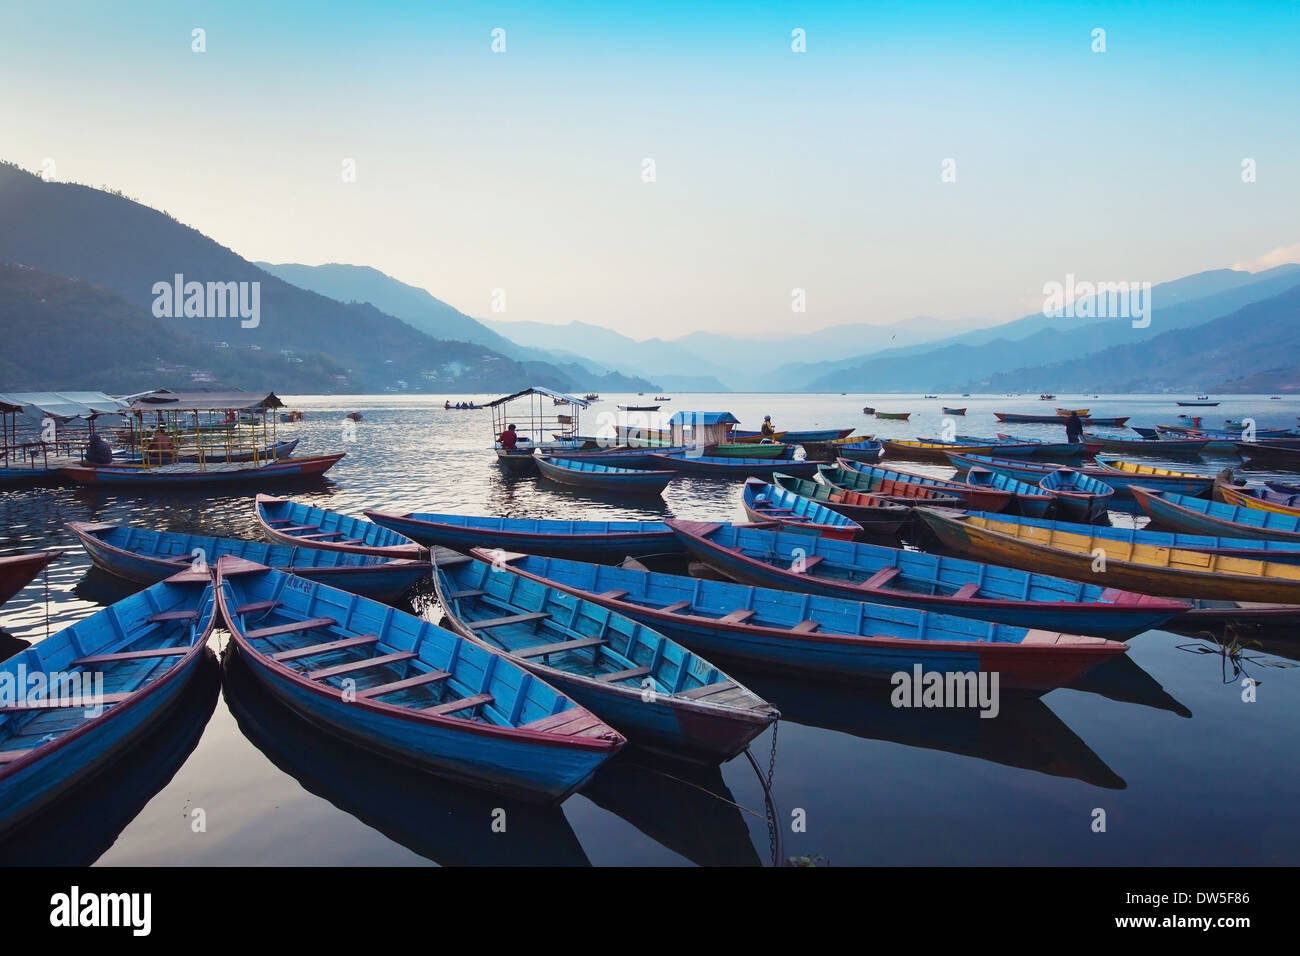 beautiful view of wooden boats in Phewa lake, Pokhara, Nepal - Stock Image